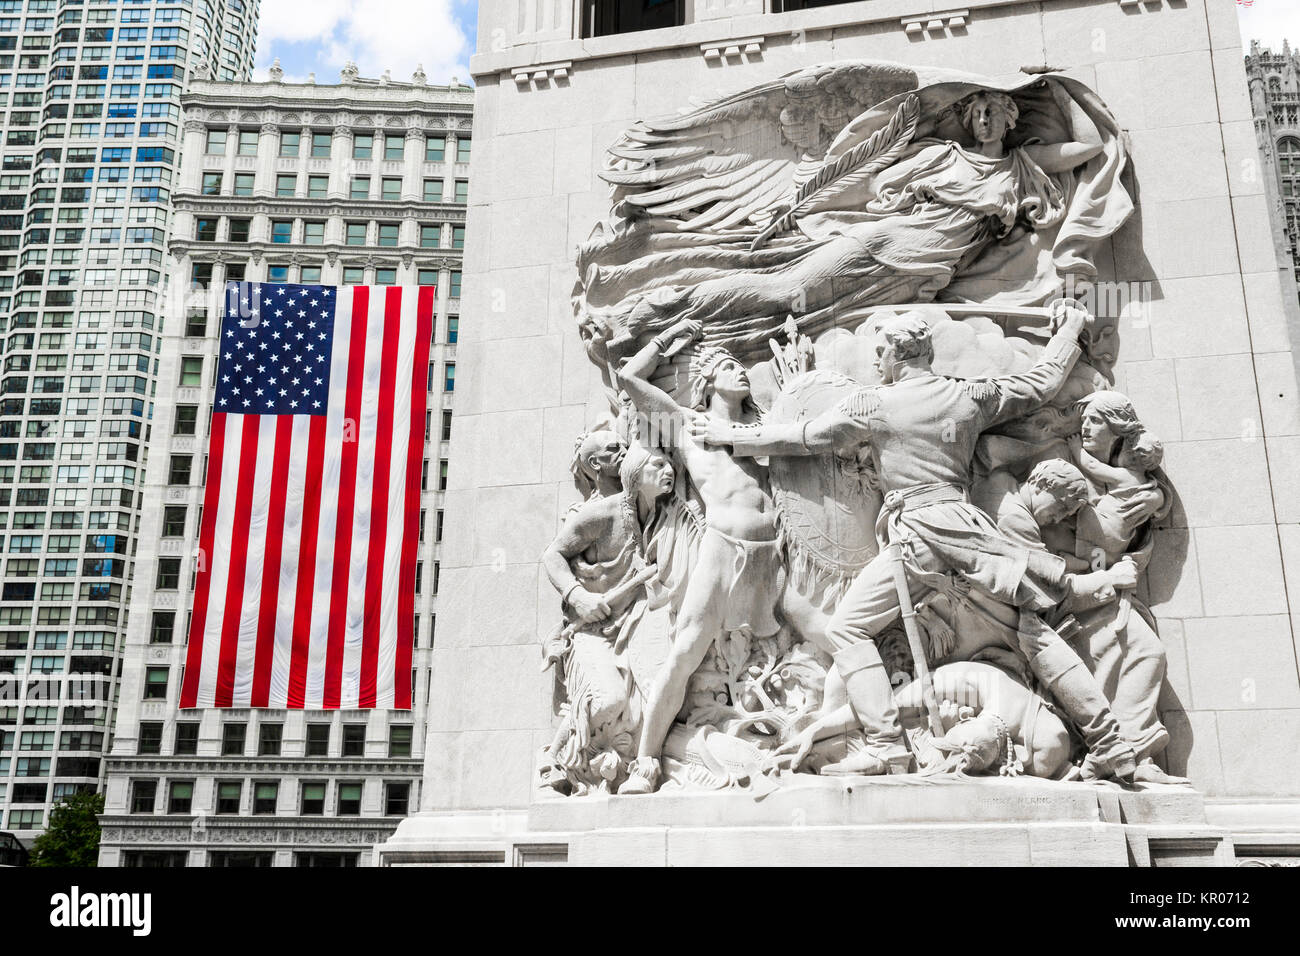 Sculpture 'Defense' depicting Ensign George Ronan in a scene from the 1812 Battle of Fort Dearborn. Michigan - Stock Image